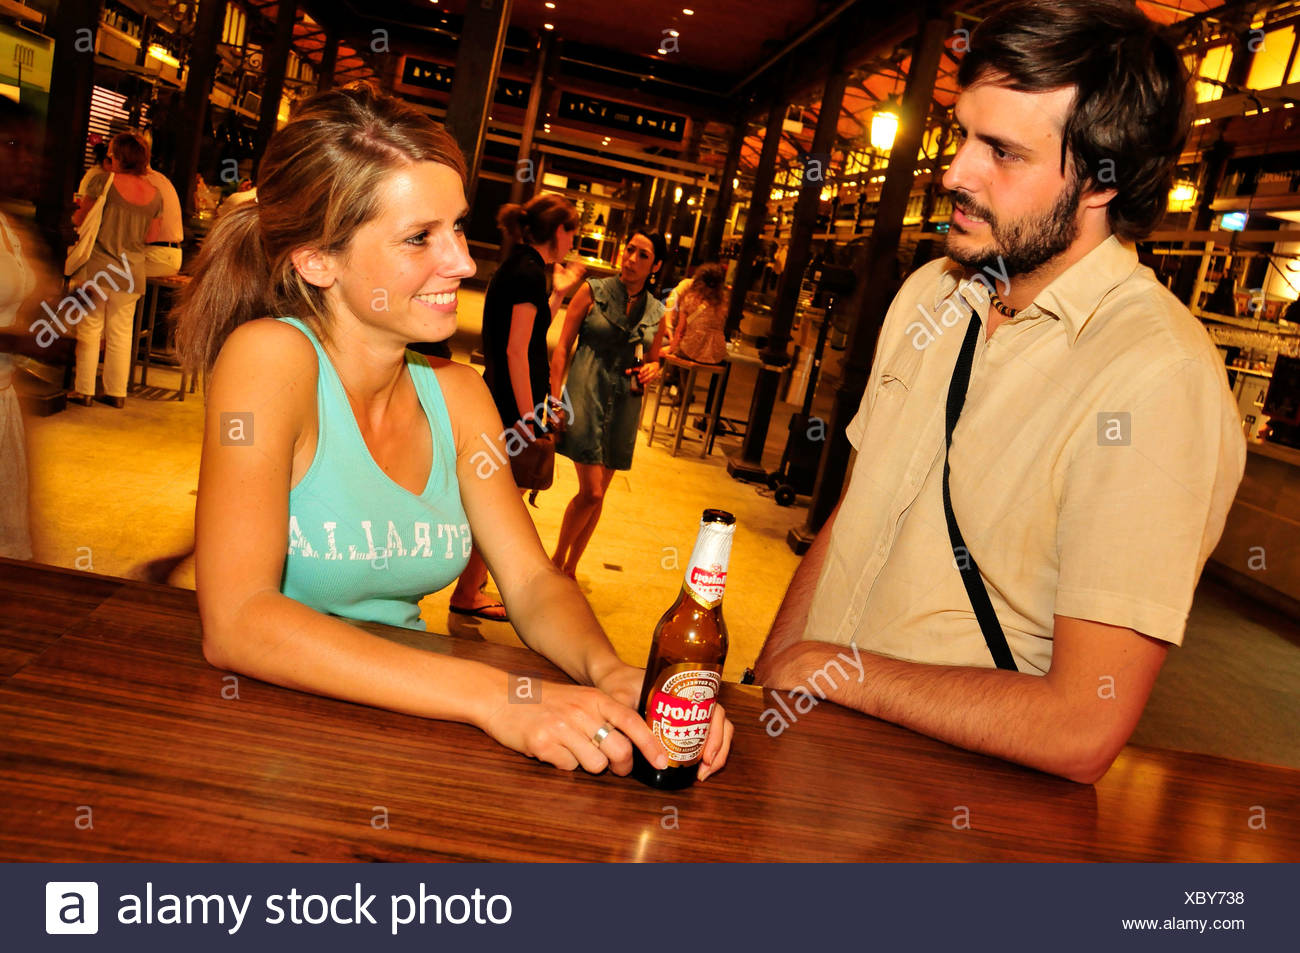 Young couple in the Bar Qué bonito es Panamá in the Mercado de la Reina, Gran Vía, nightlife, Madrid, Spain, Iberian Peninsula, - Stock Image